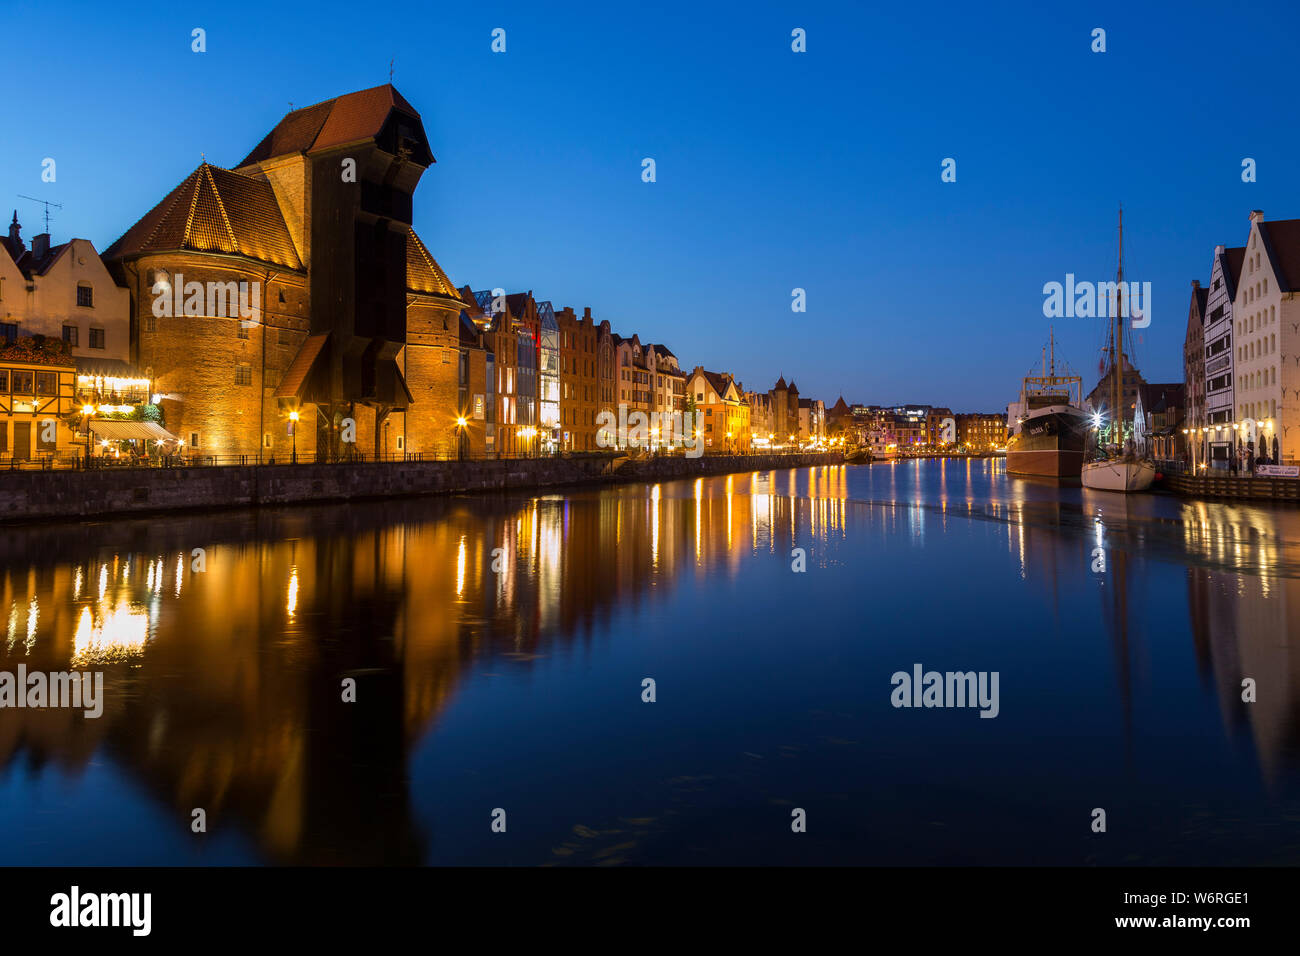 Scenic view of the lit Crane and other old buildings along the Long Bridge waterfront at the Main Town in Gdansk, Poland, in the evening. Stock Photo